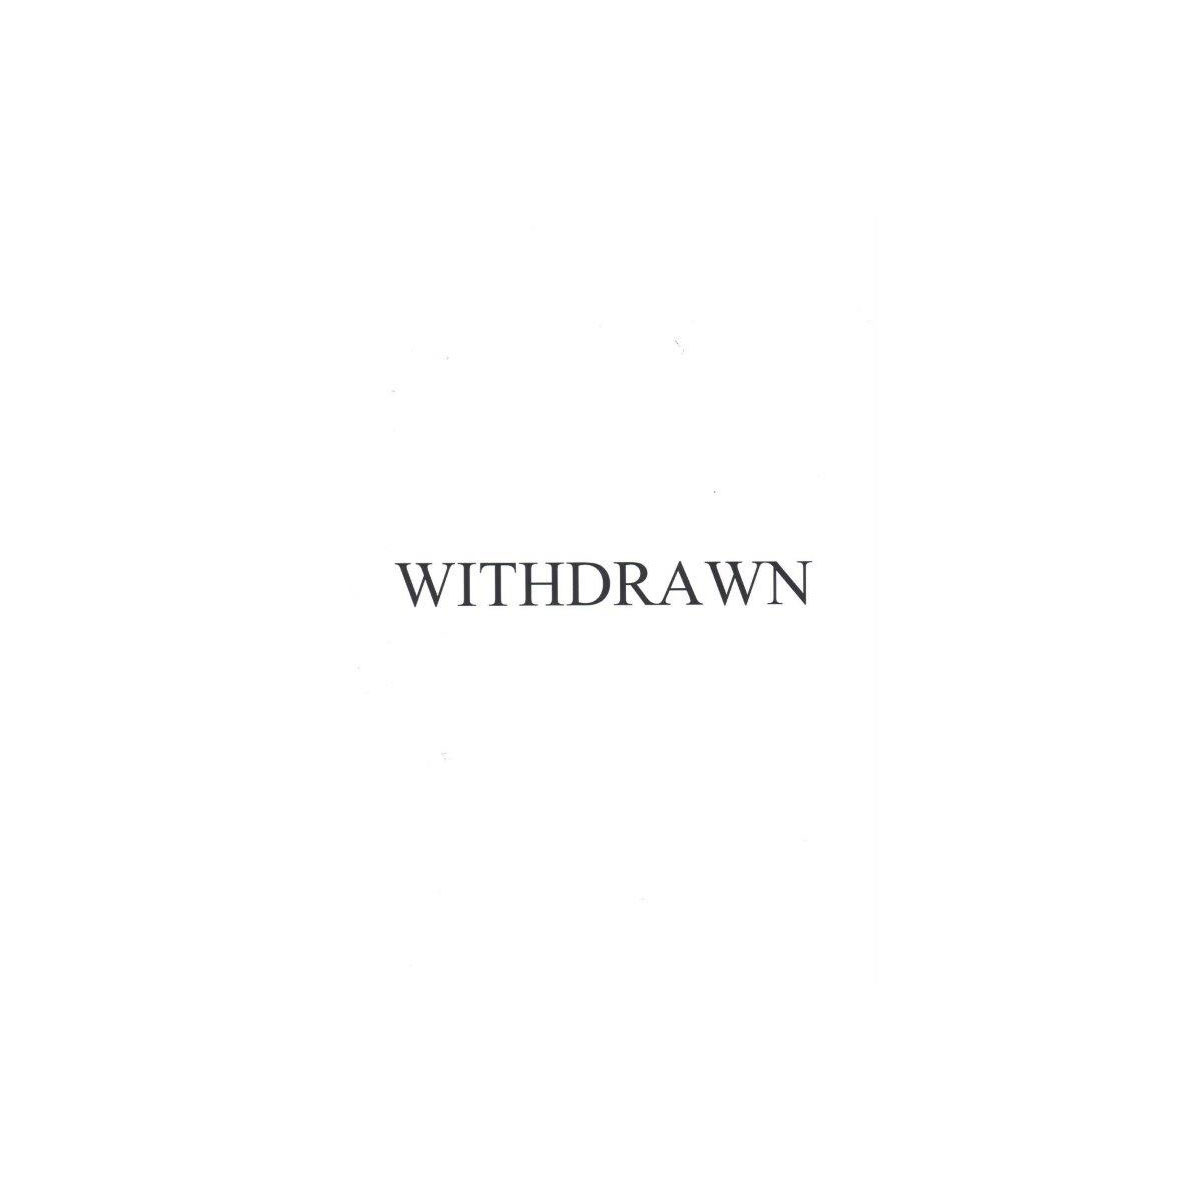 WITHDRAWN